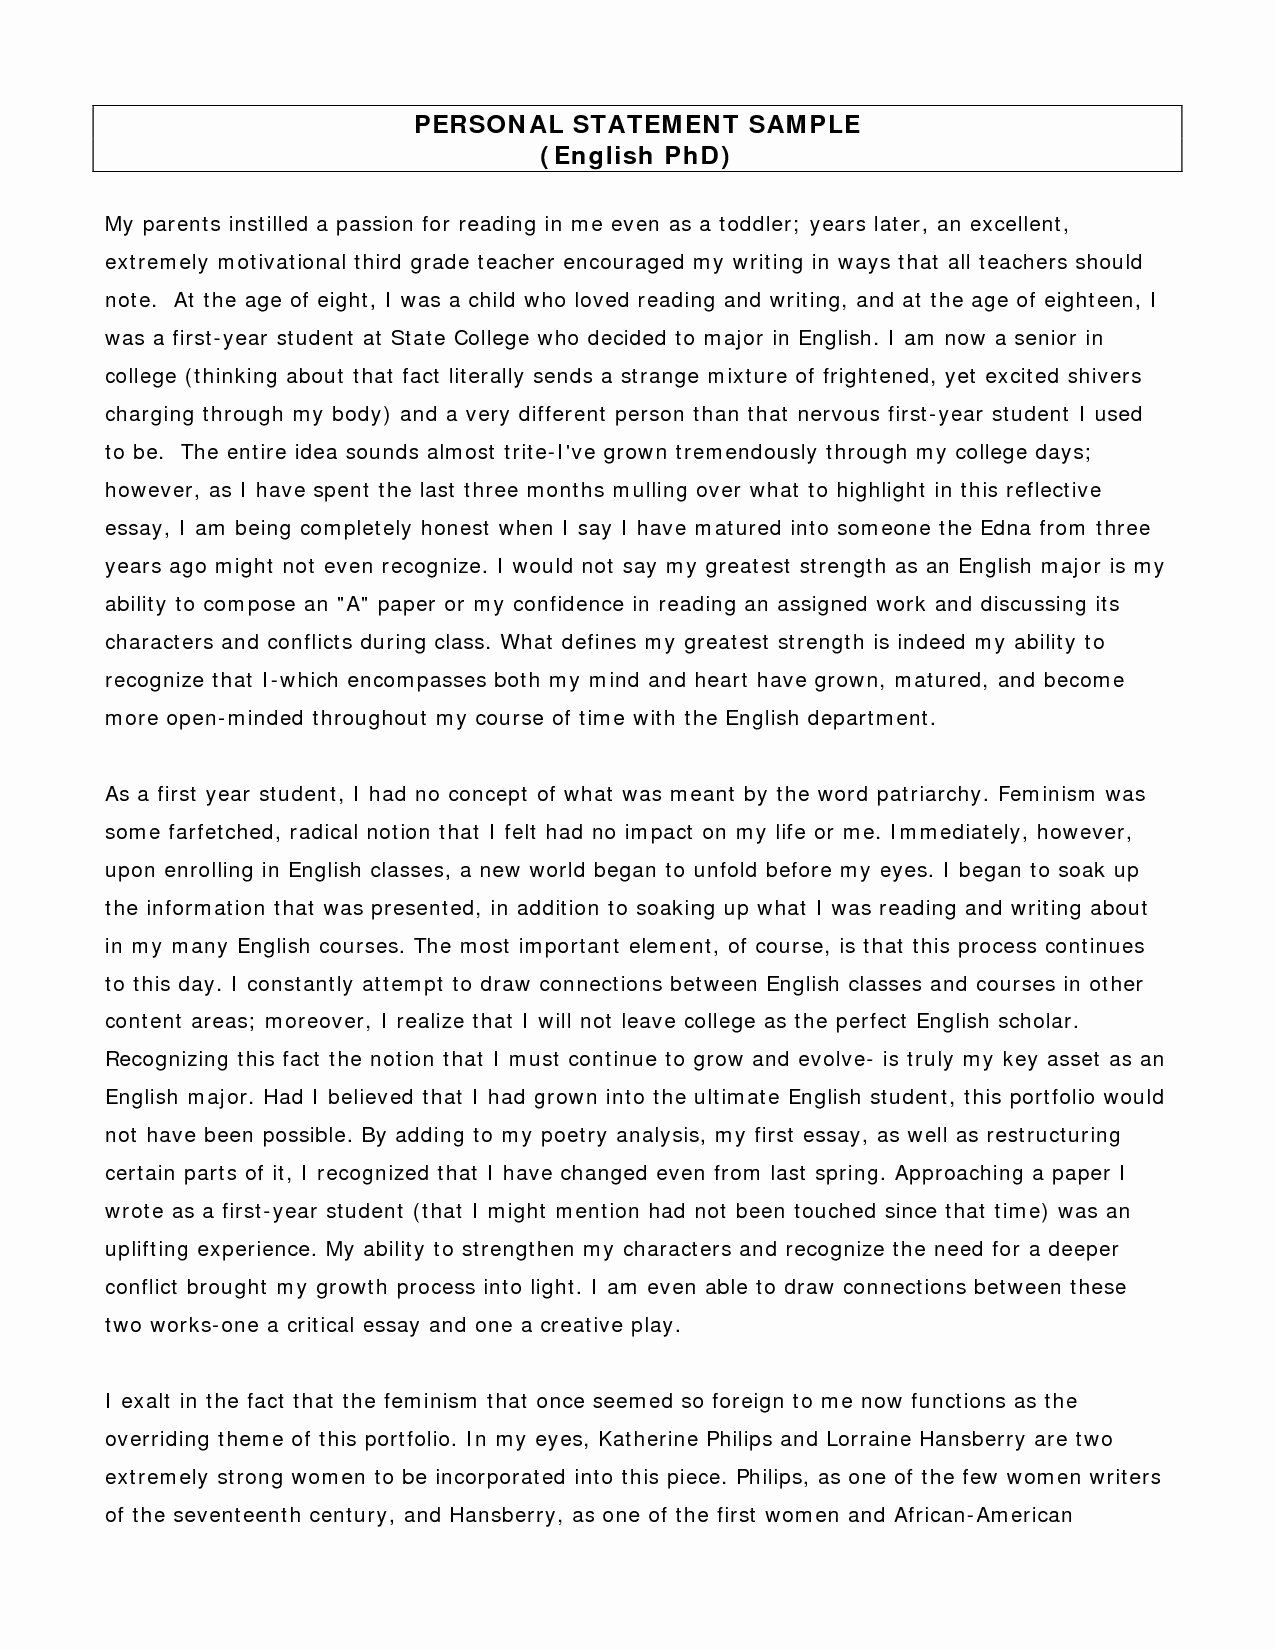 Sample Personal History Statement Graduate School Fresh Difference Between Private and Public Schools Essay why